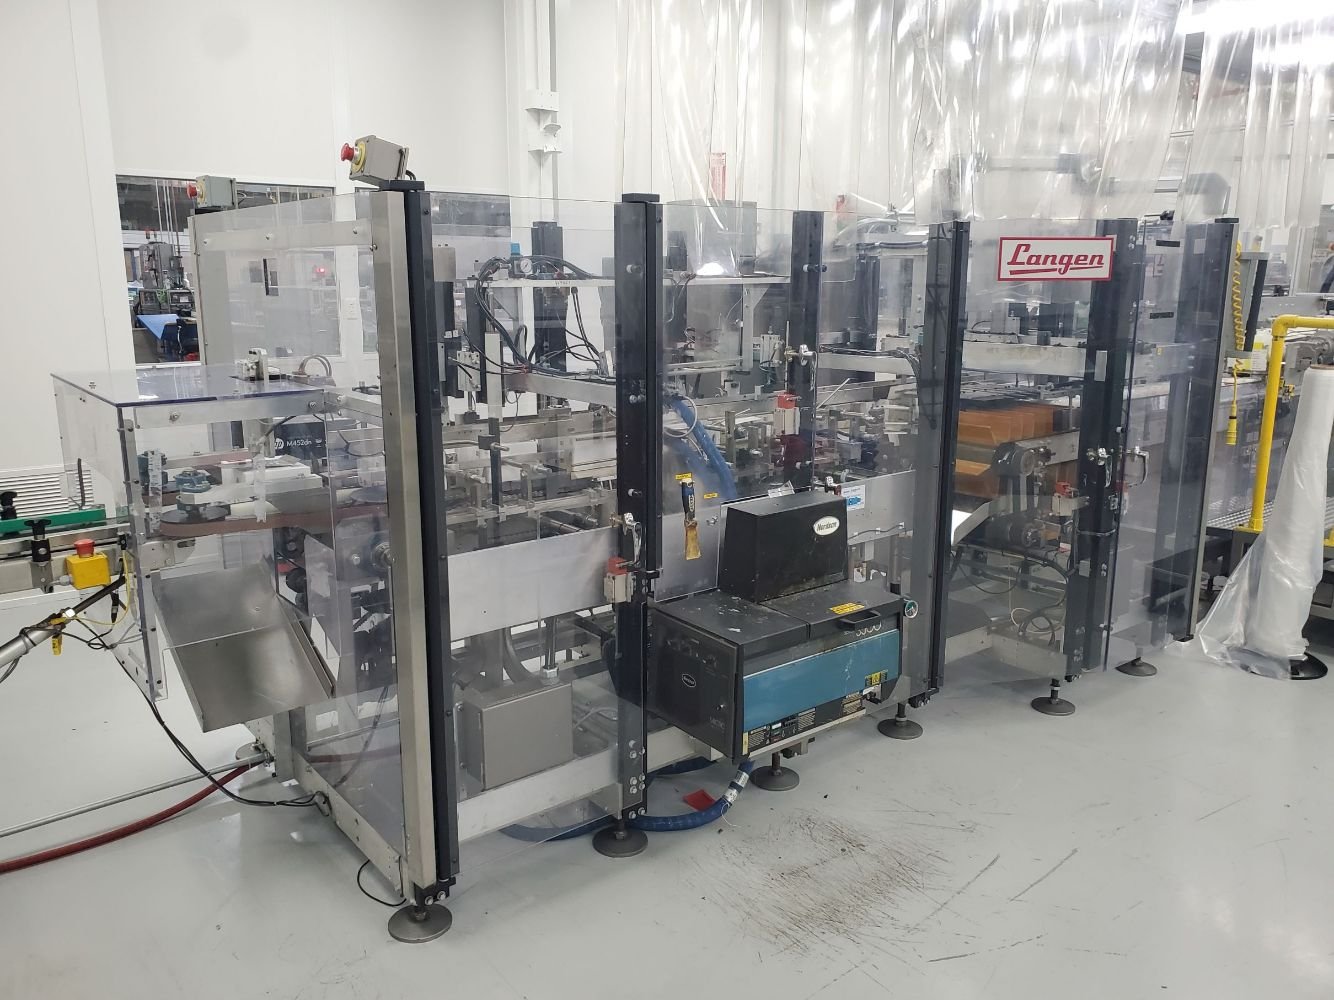 PLASTIC EXTRUSION | THERMOFORMING | PACKAGING EQUIPMENT | PLANT SUPPORT ASSETS | FROM A GLOBAL PERSONAL CARE PRODUCTS MANUFACTURER